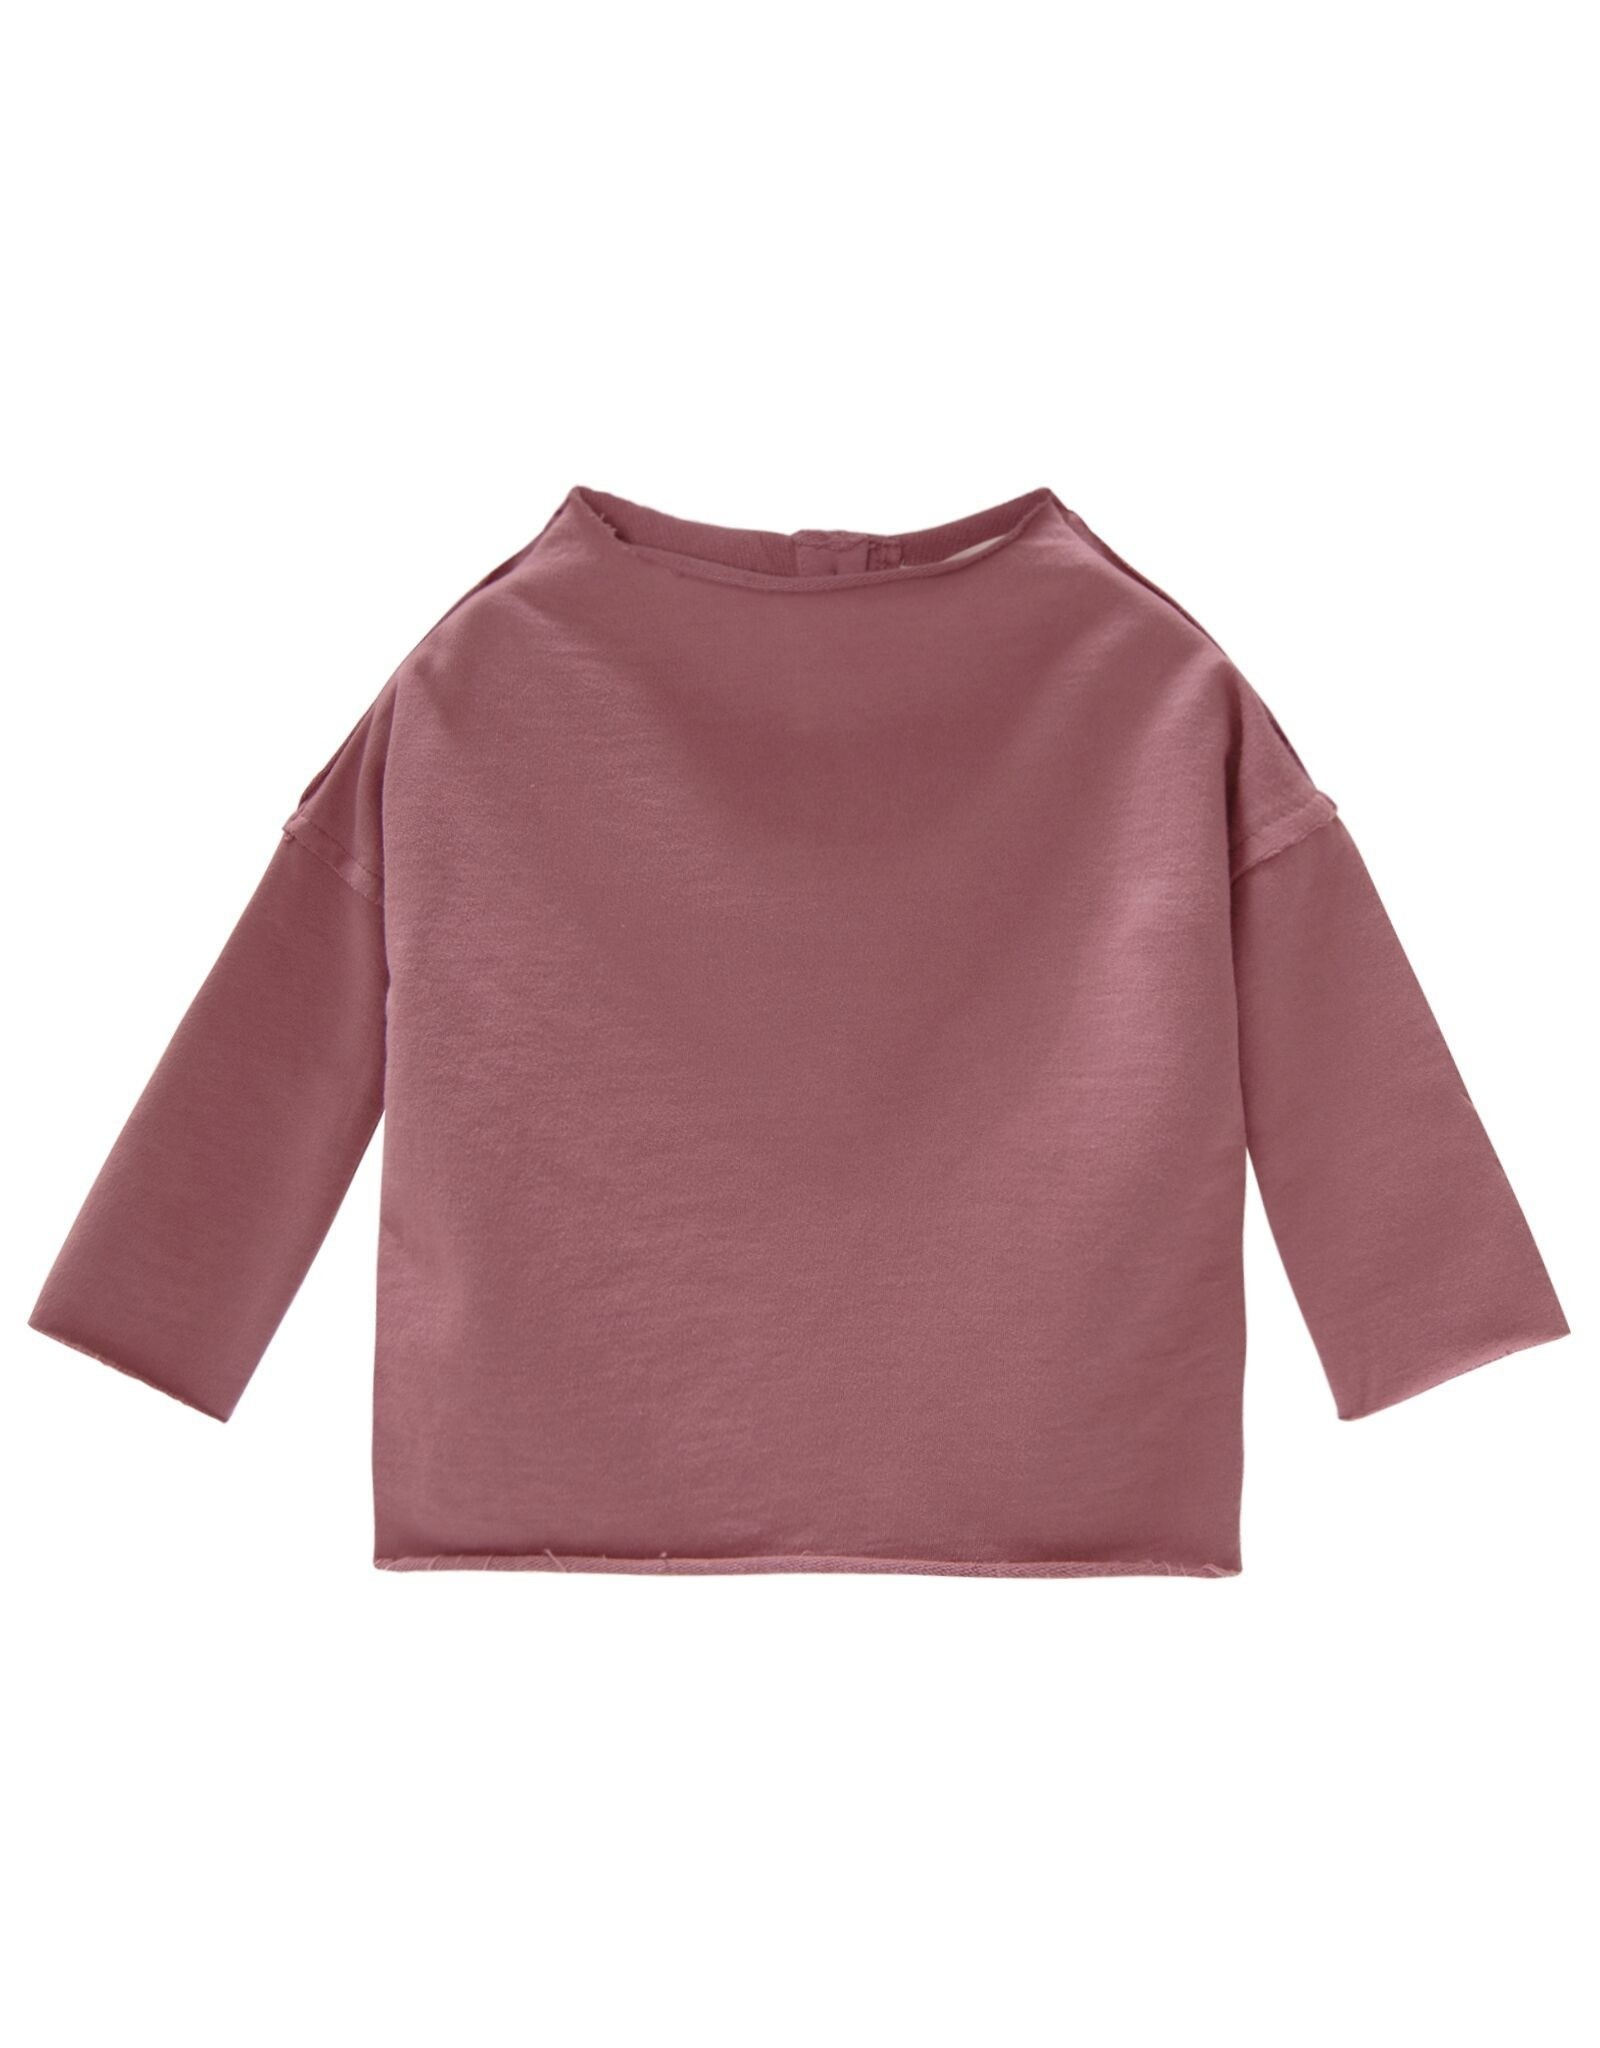 Go Gently Nation pullover sweatshirt- berry